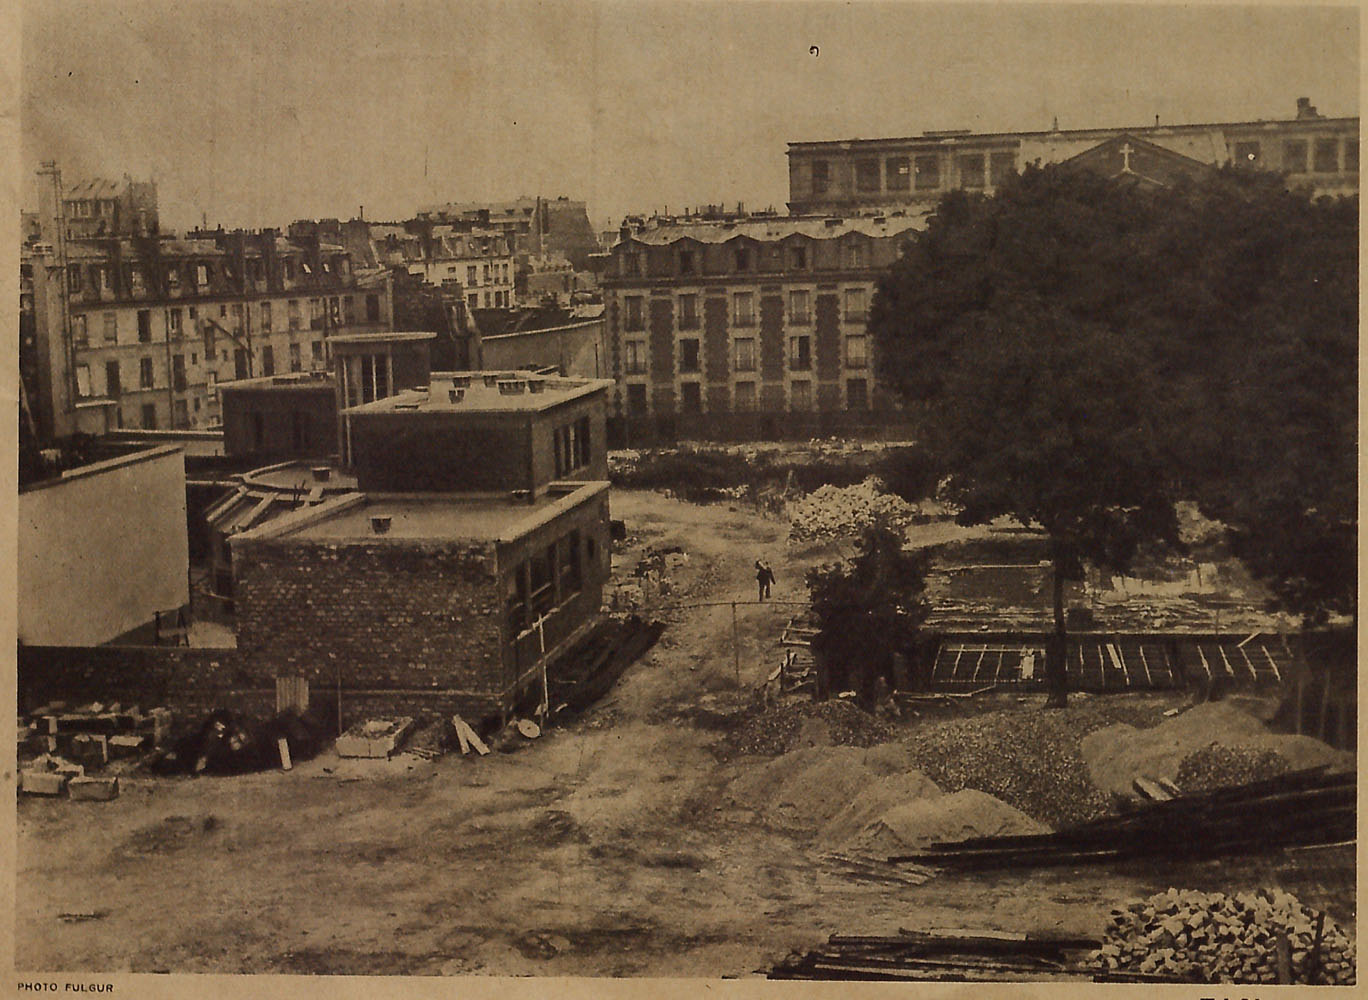 Demolition of Lazare